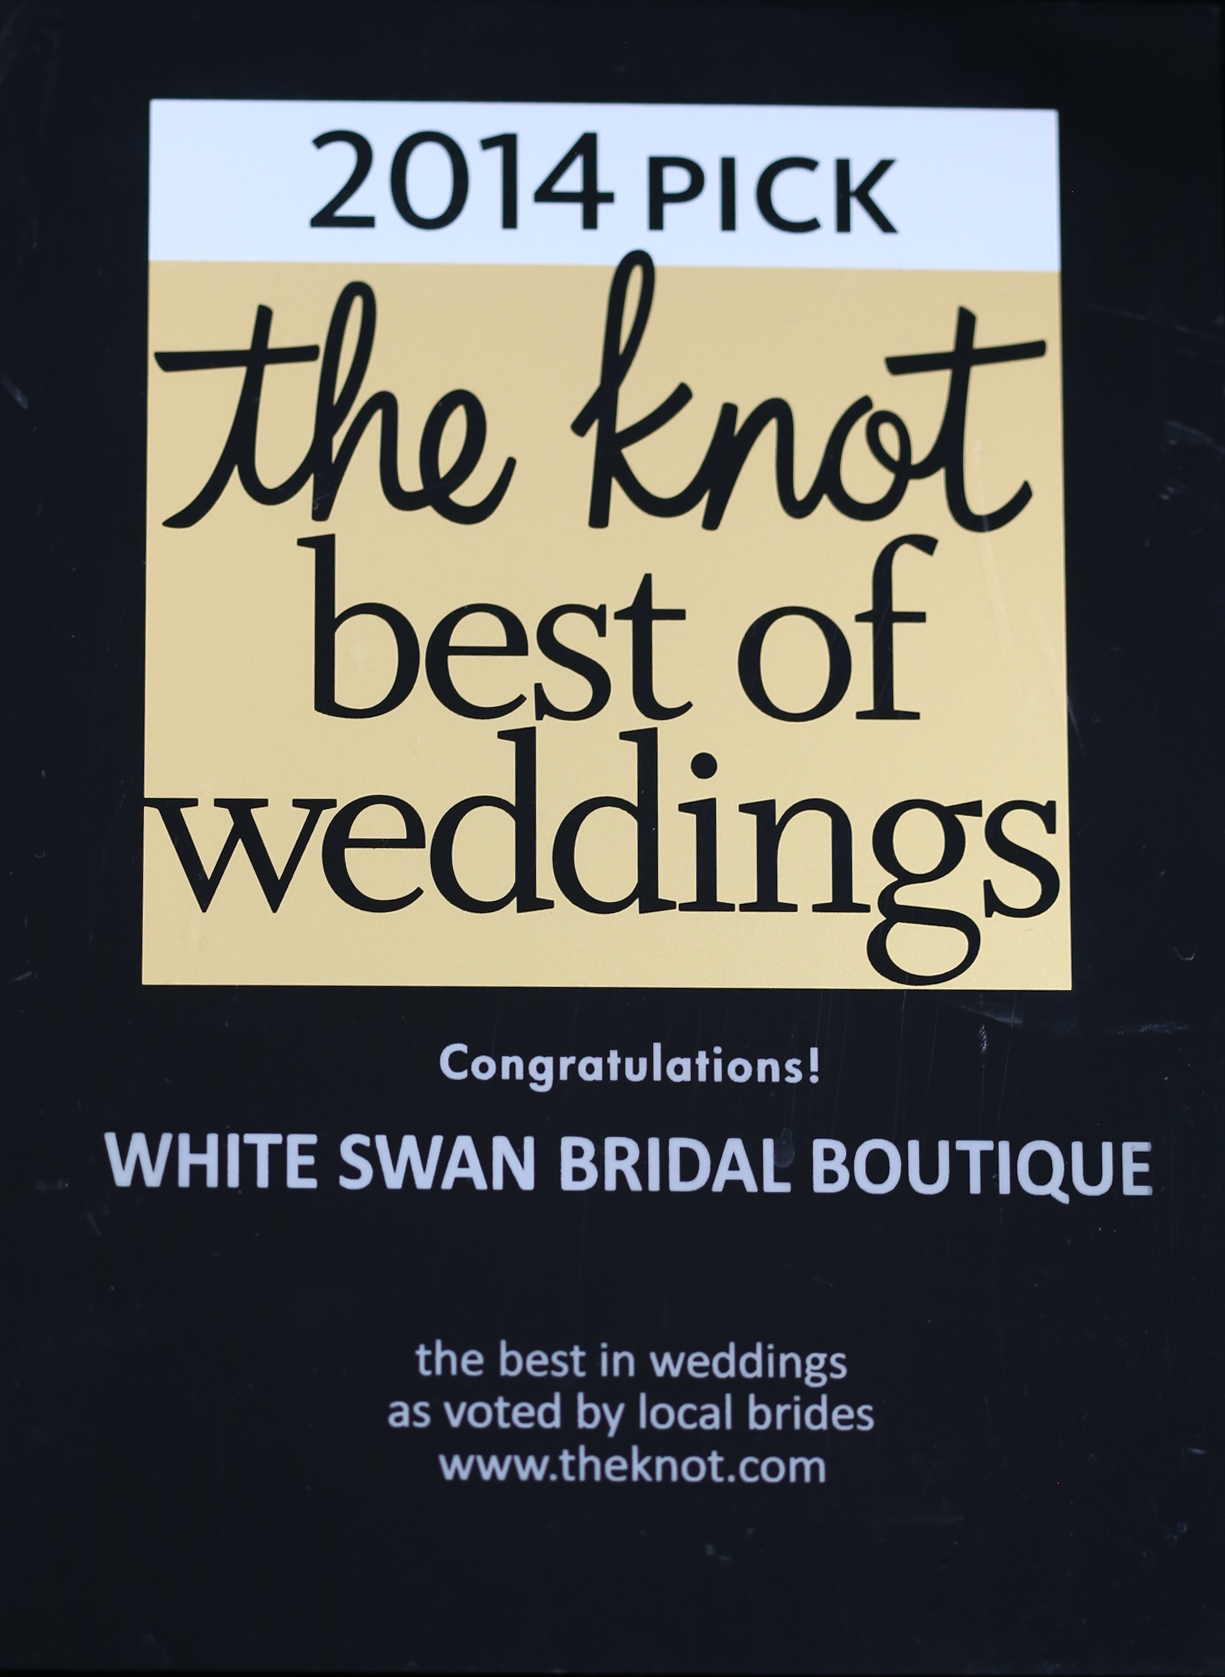 The Knot: Best Of Weddings 2014